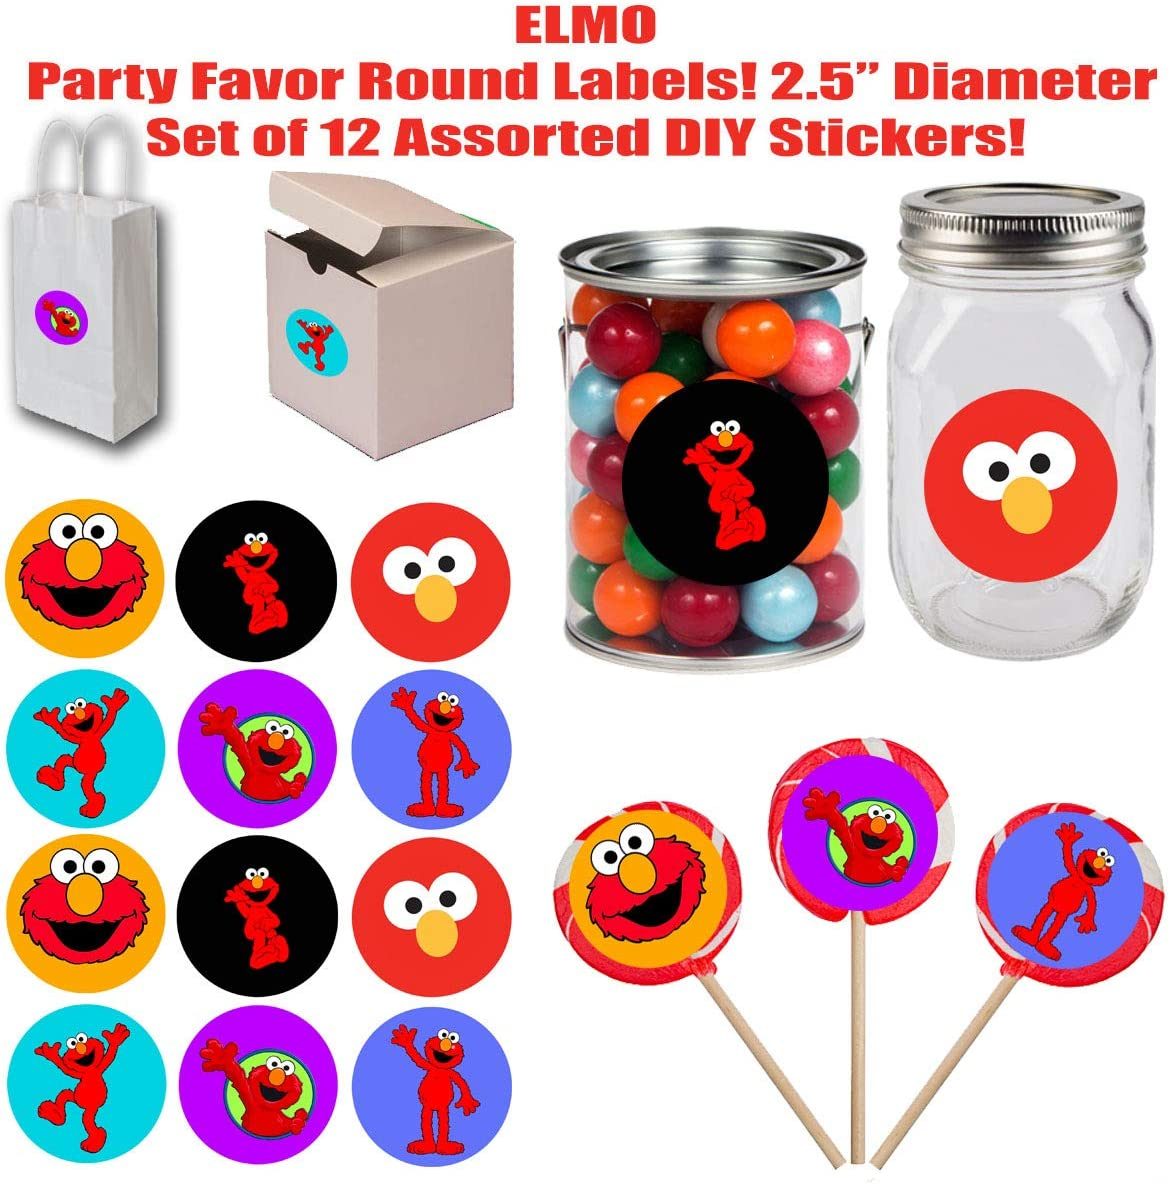 Elmo Candy Bag Stickers Logo* SCROLL - Printed TagsStickers All PHOTOS for more information Elmo Stickers